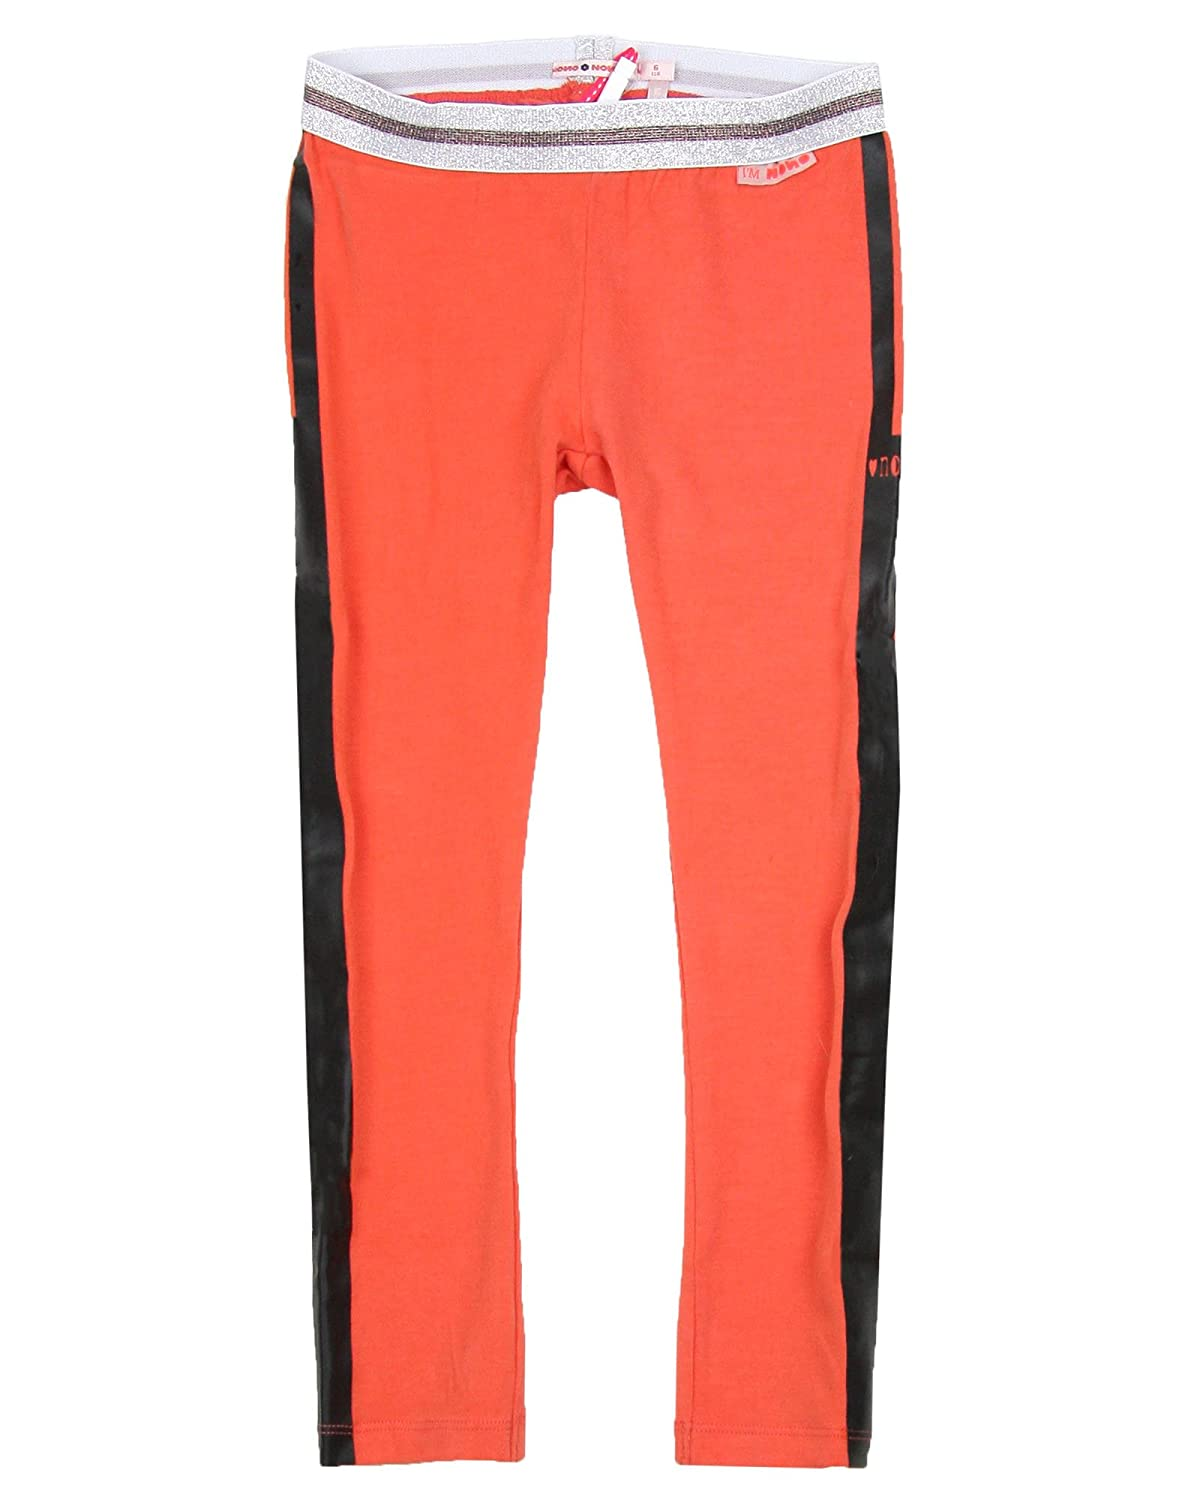 Nono Girls Leggings with Striped Coral Sizes 4-16